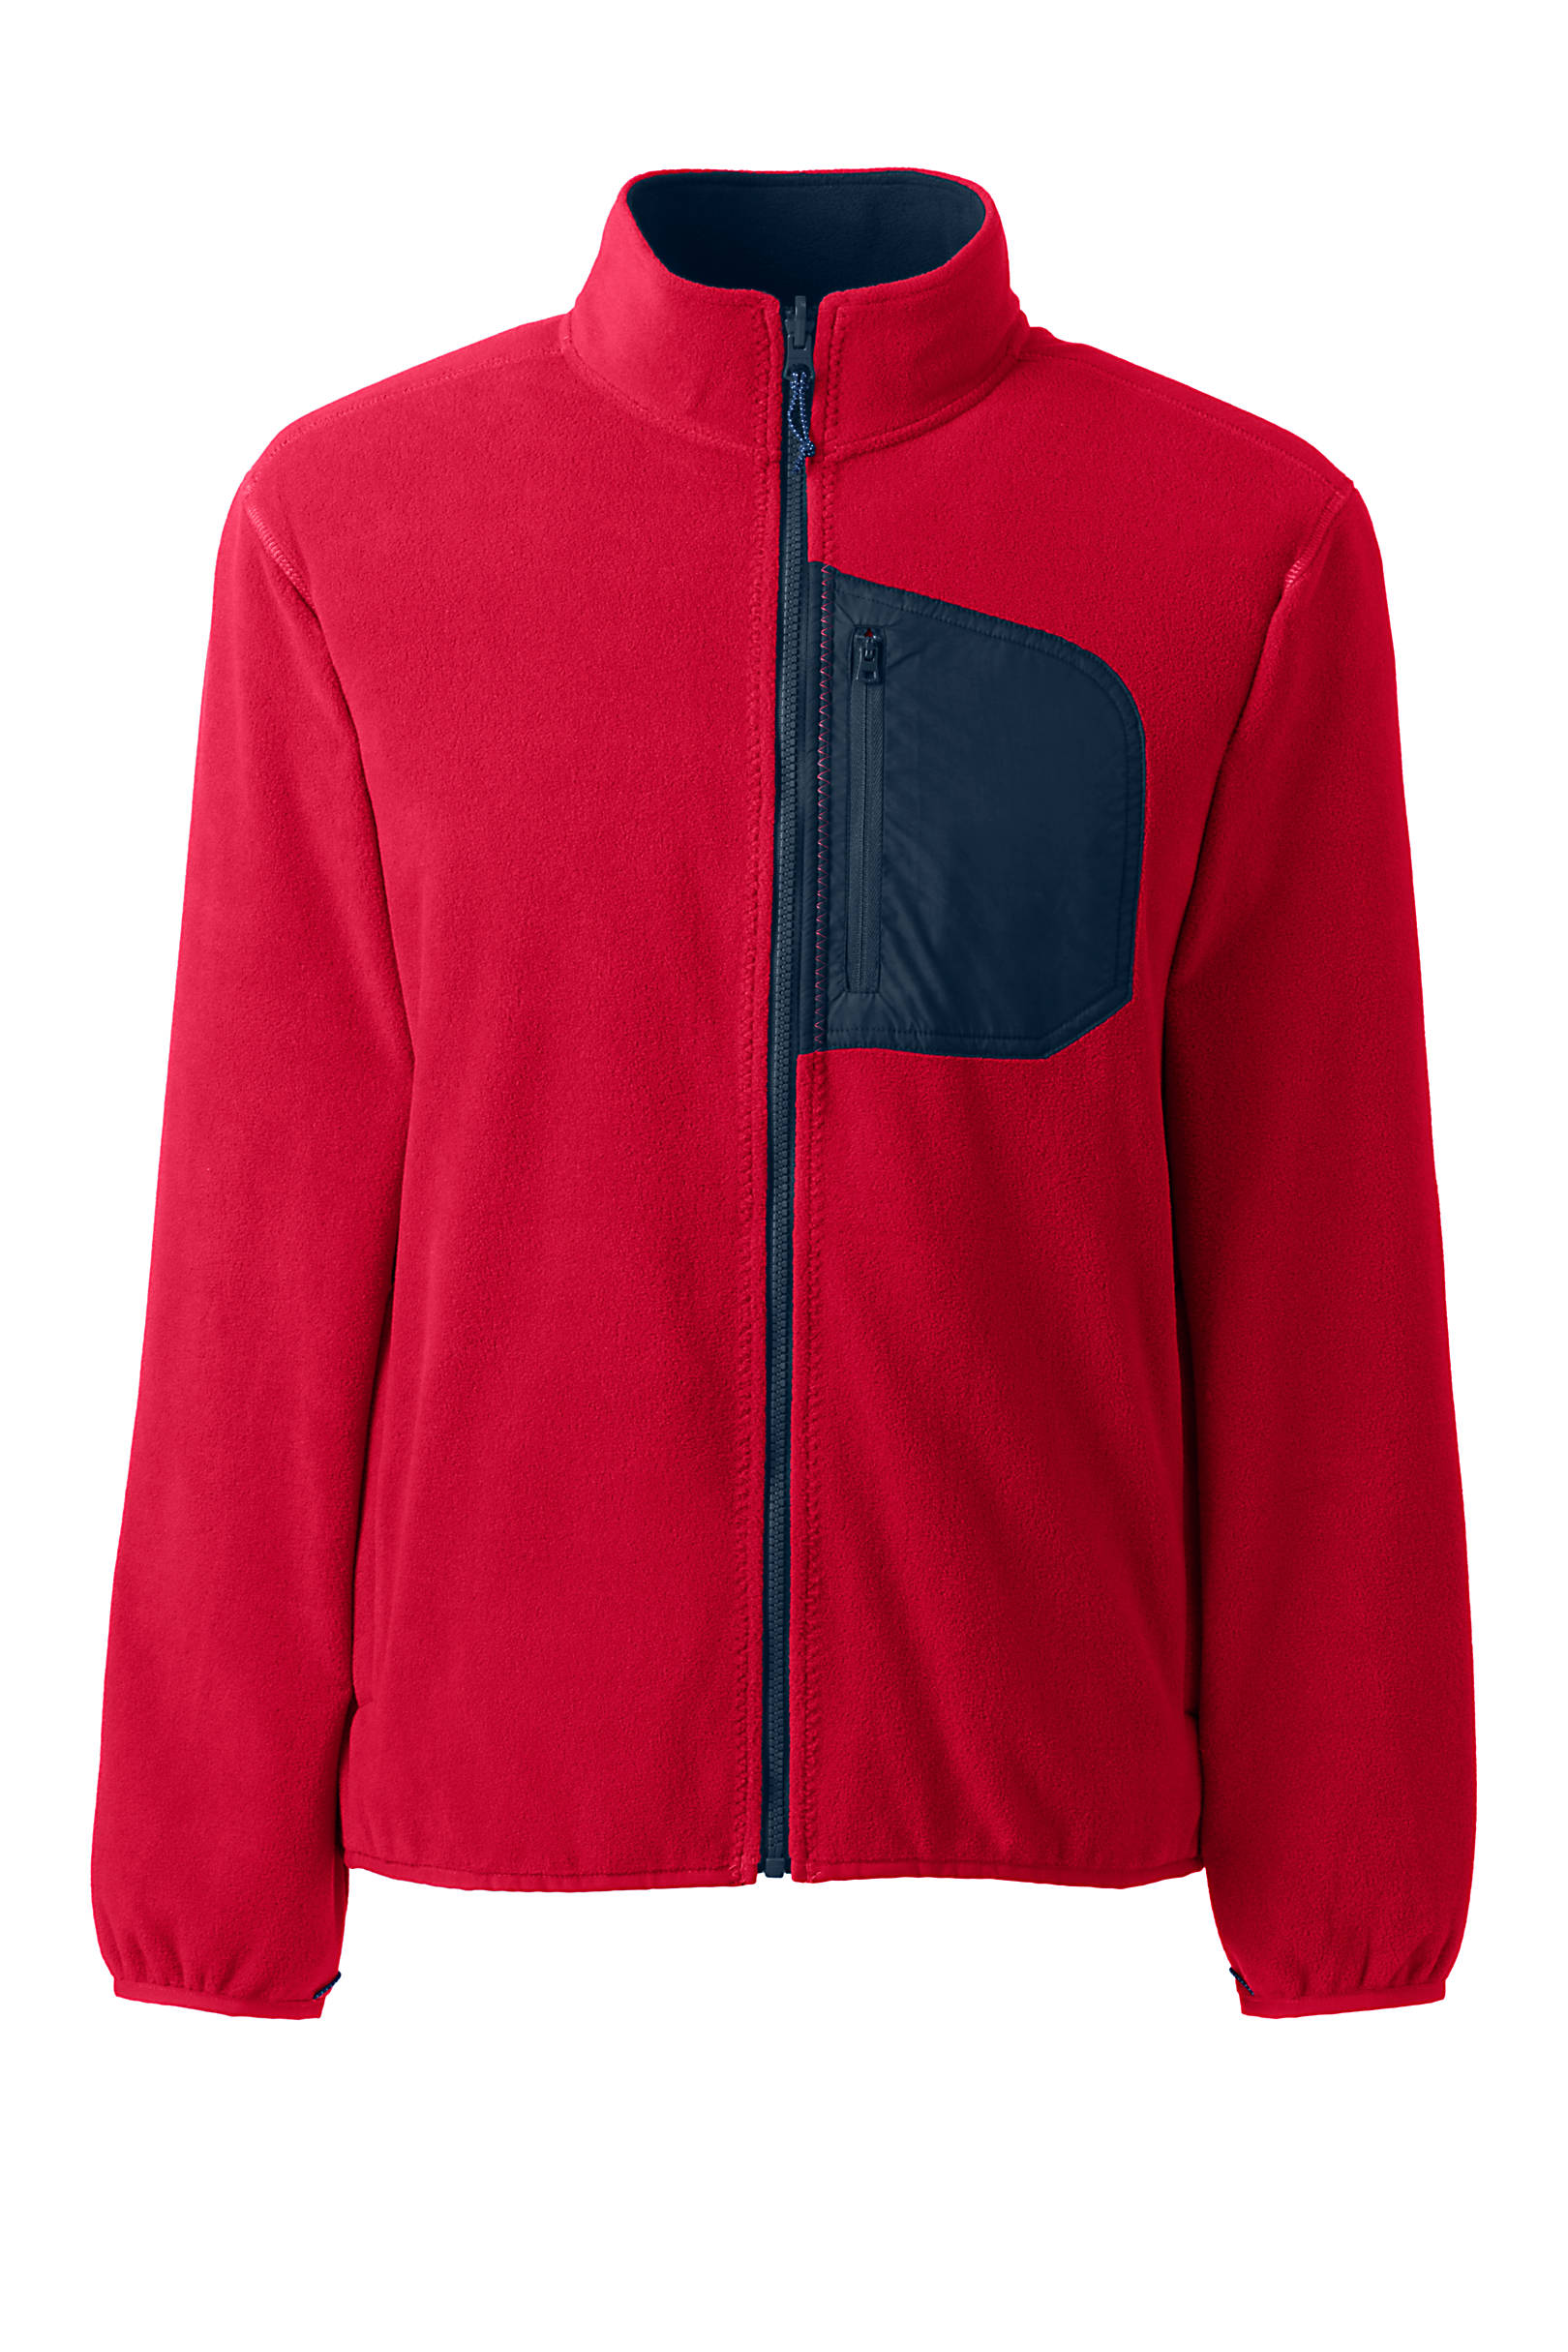 Lands' End Men's Thermacheck 200 Fleece Jacket